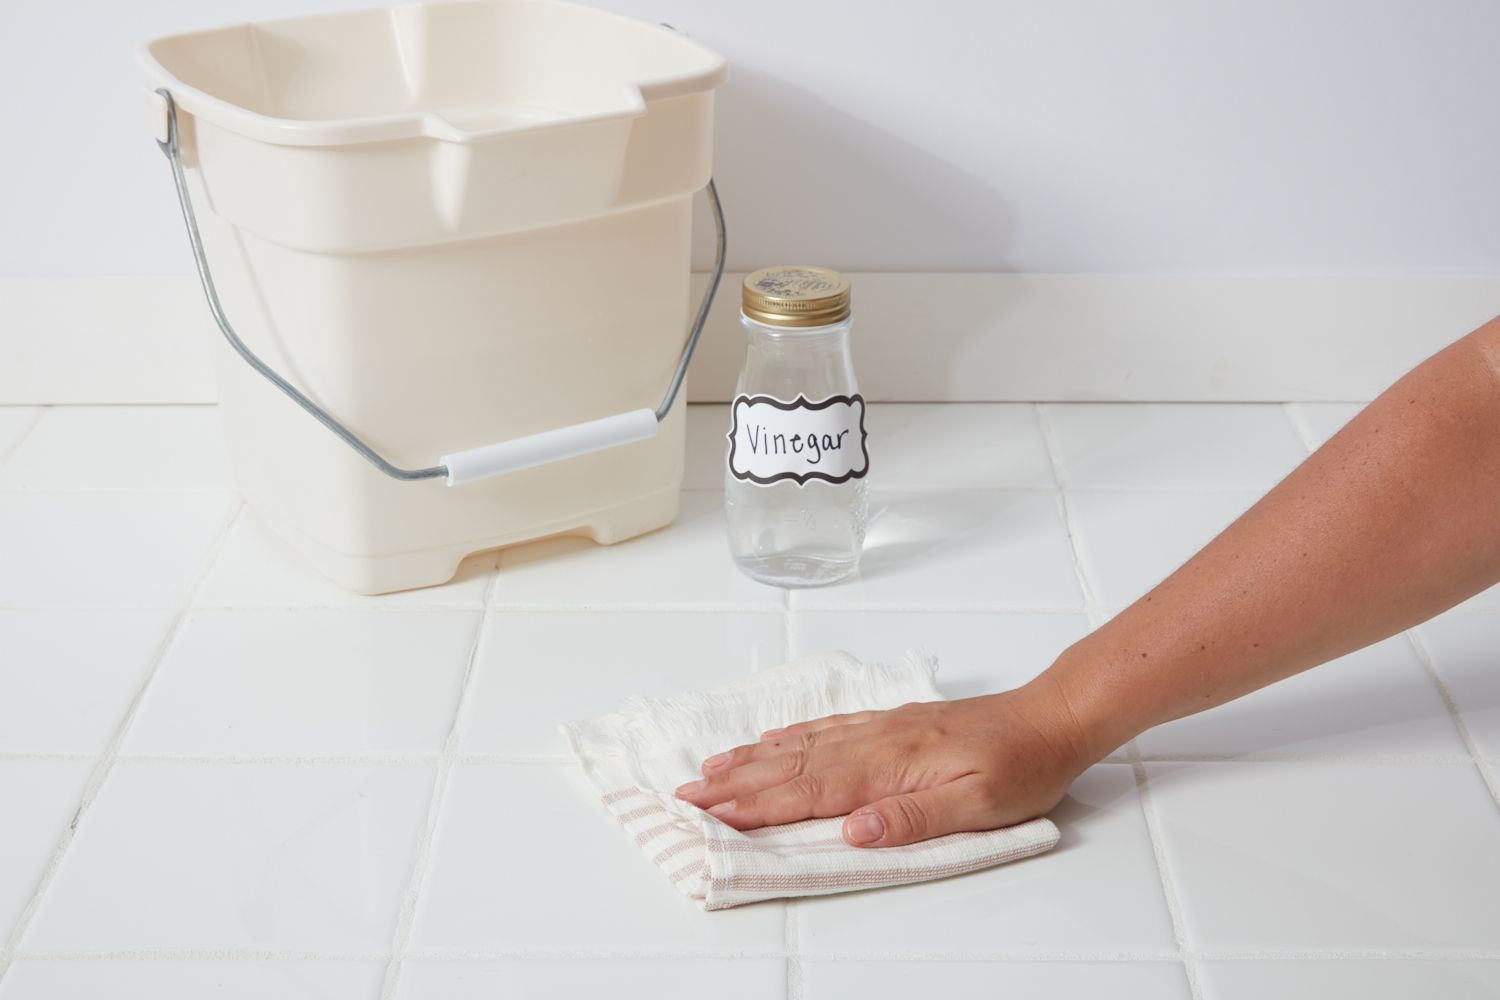 Cleaning tile floor with vinegar solution